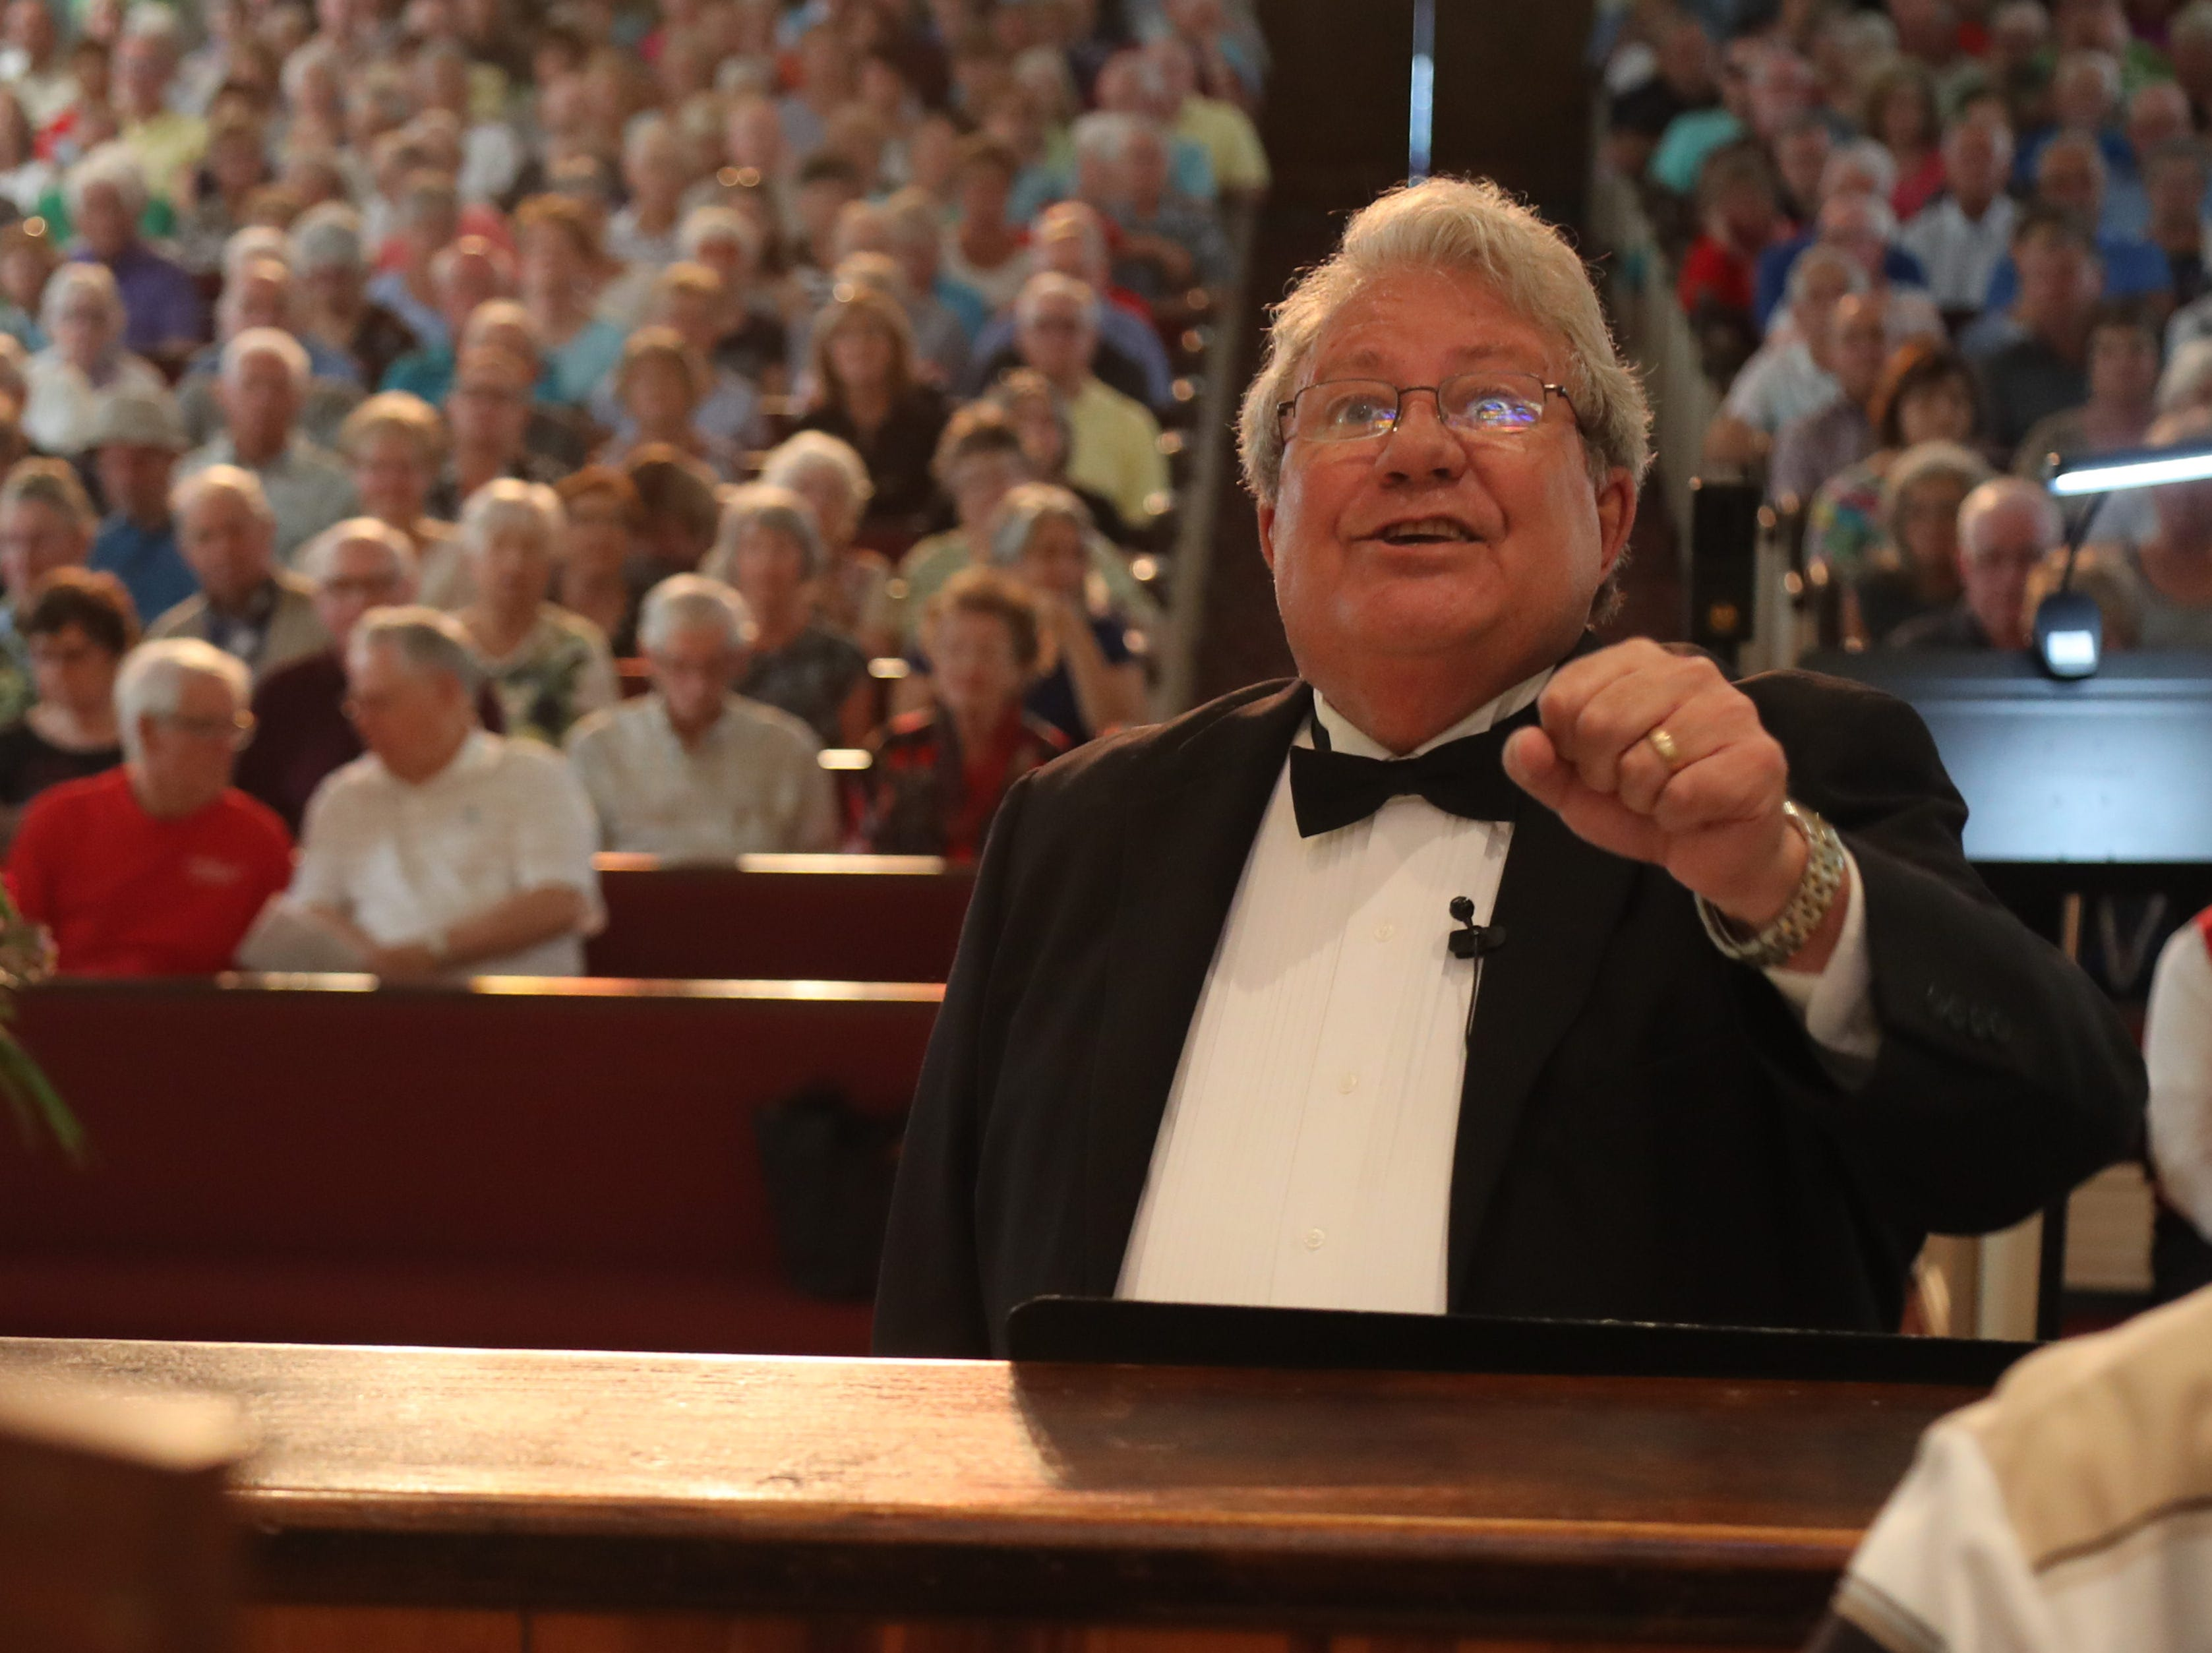 Roger Peterson leads the choir during the 30th Annual Mrs. Edison's Hymn Sing on Tuesday, February 5, 2019, at First Presbyterian Church in Fort Myers.